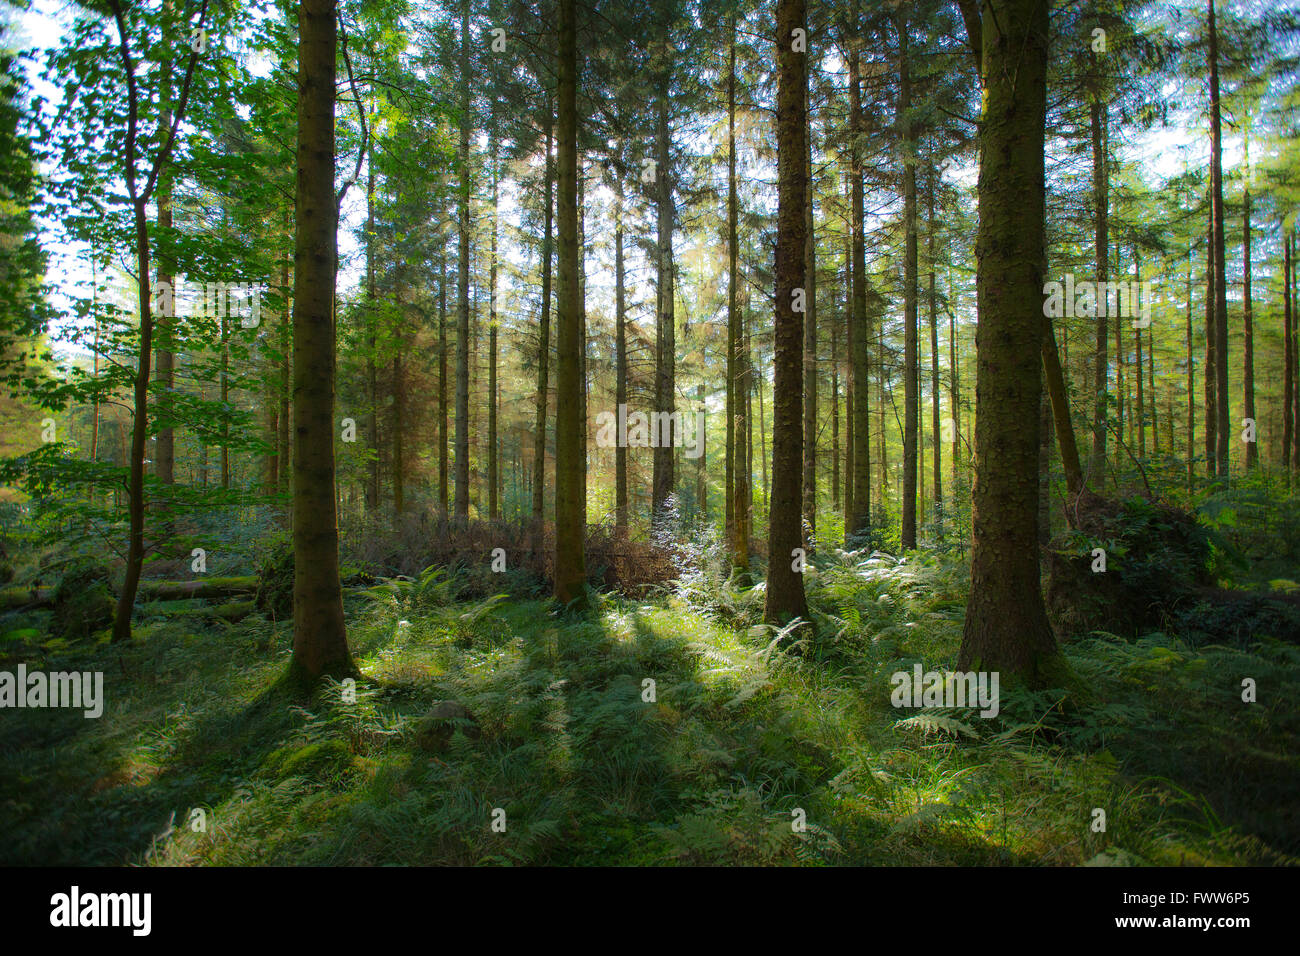 Scottish forest scene with sunlight coming through trees - Stock Image